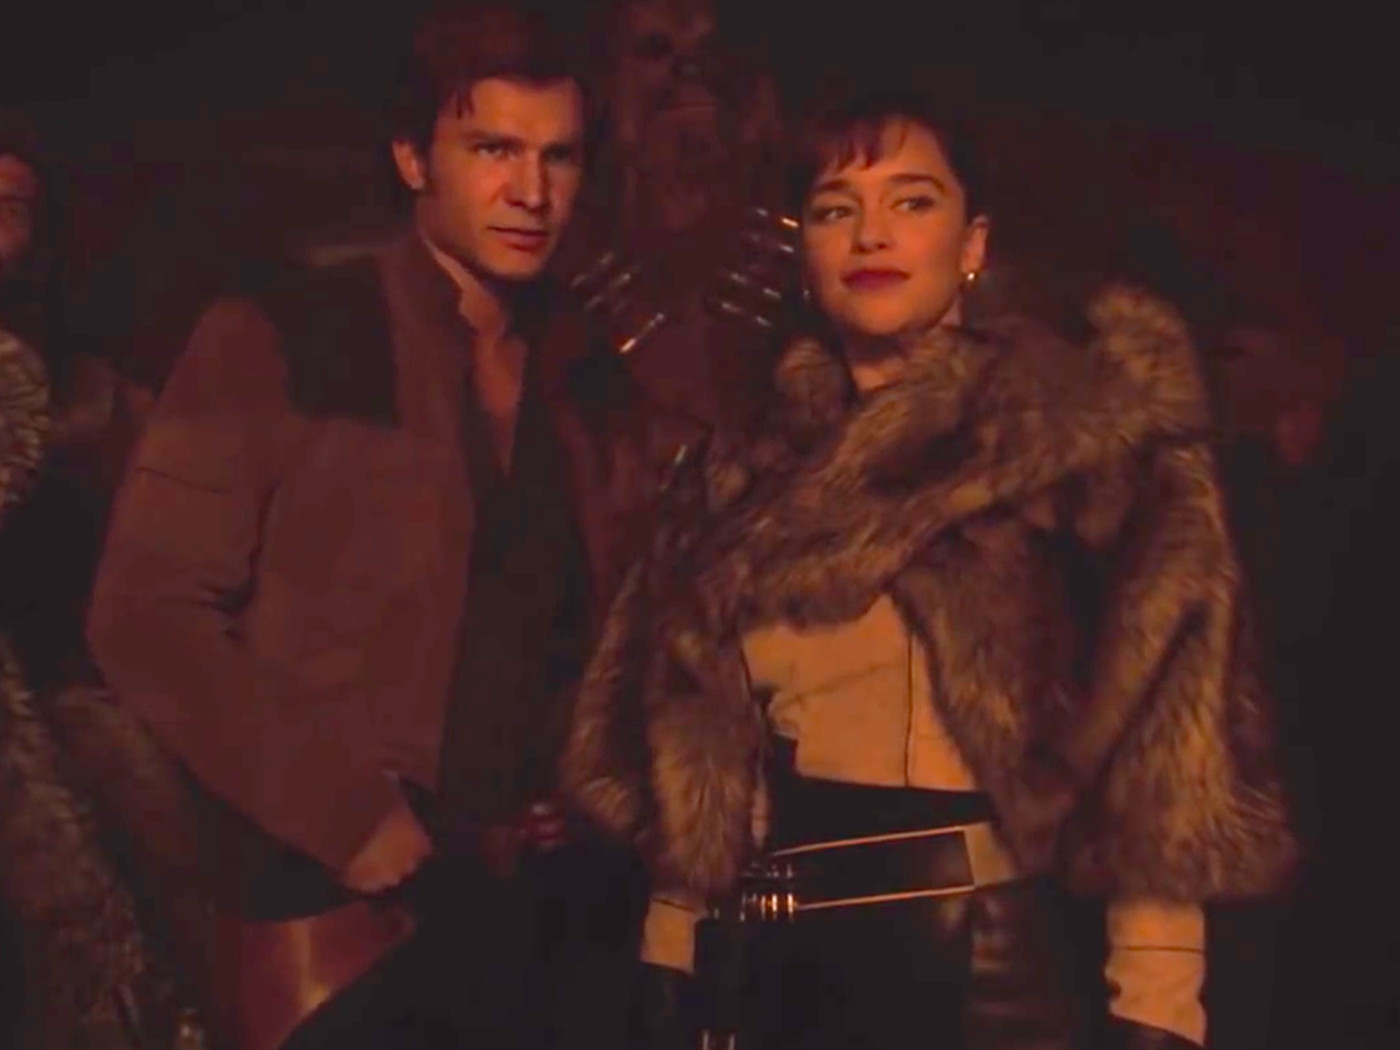 Harrison Ford stars in Solo: A Star Wars Story in new